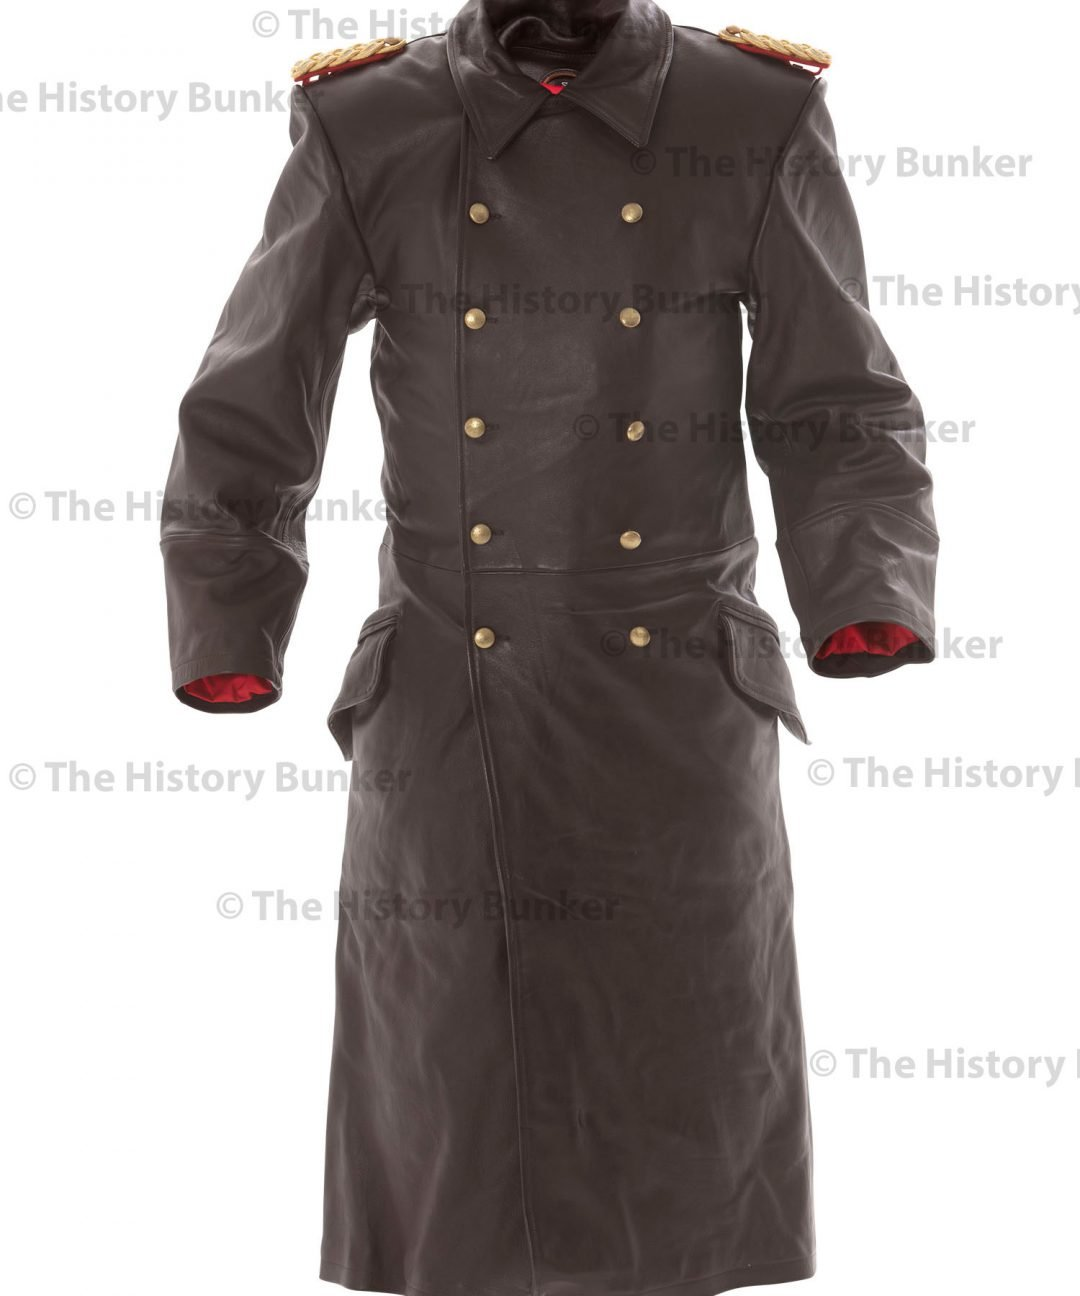 WW2 German Army Senior officer leather trench coat - brown